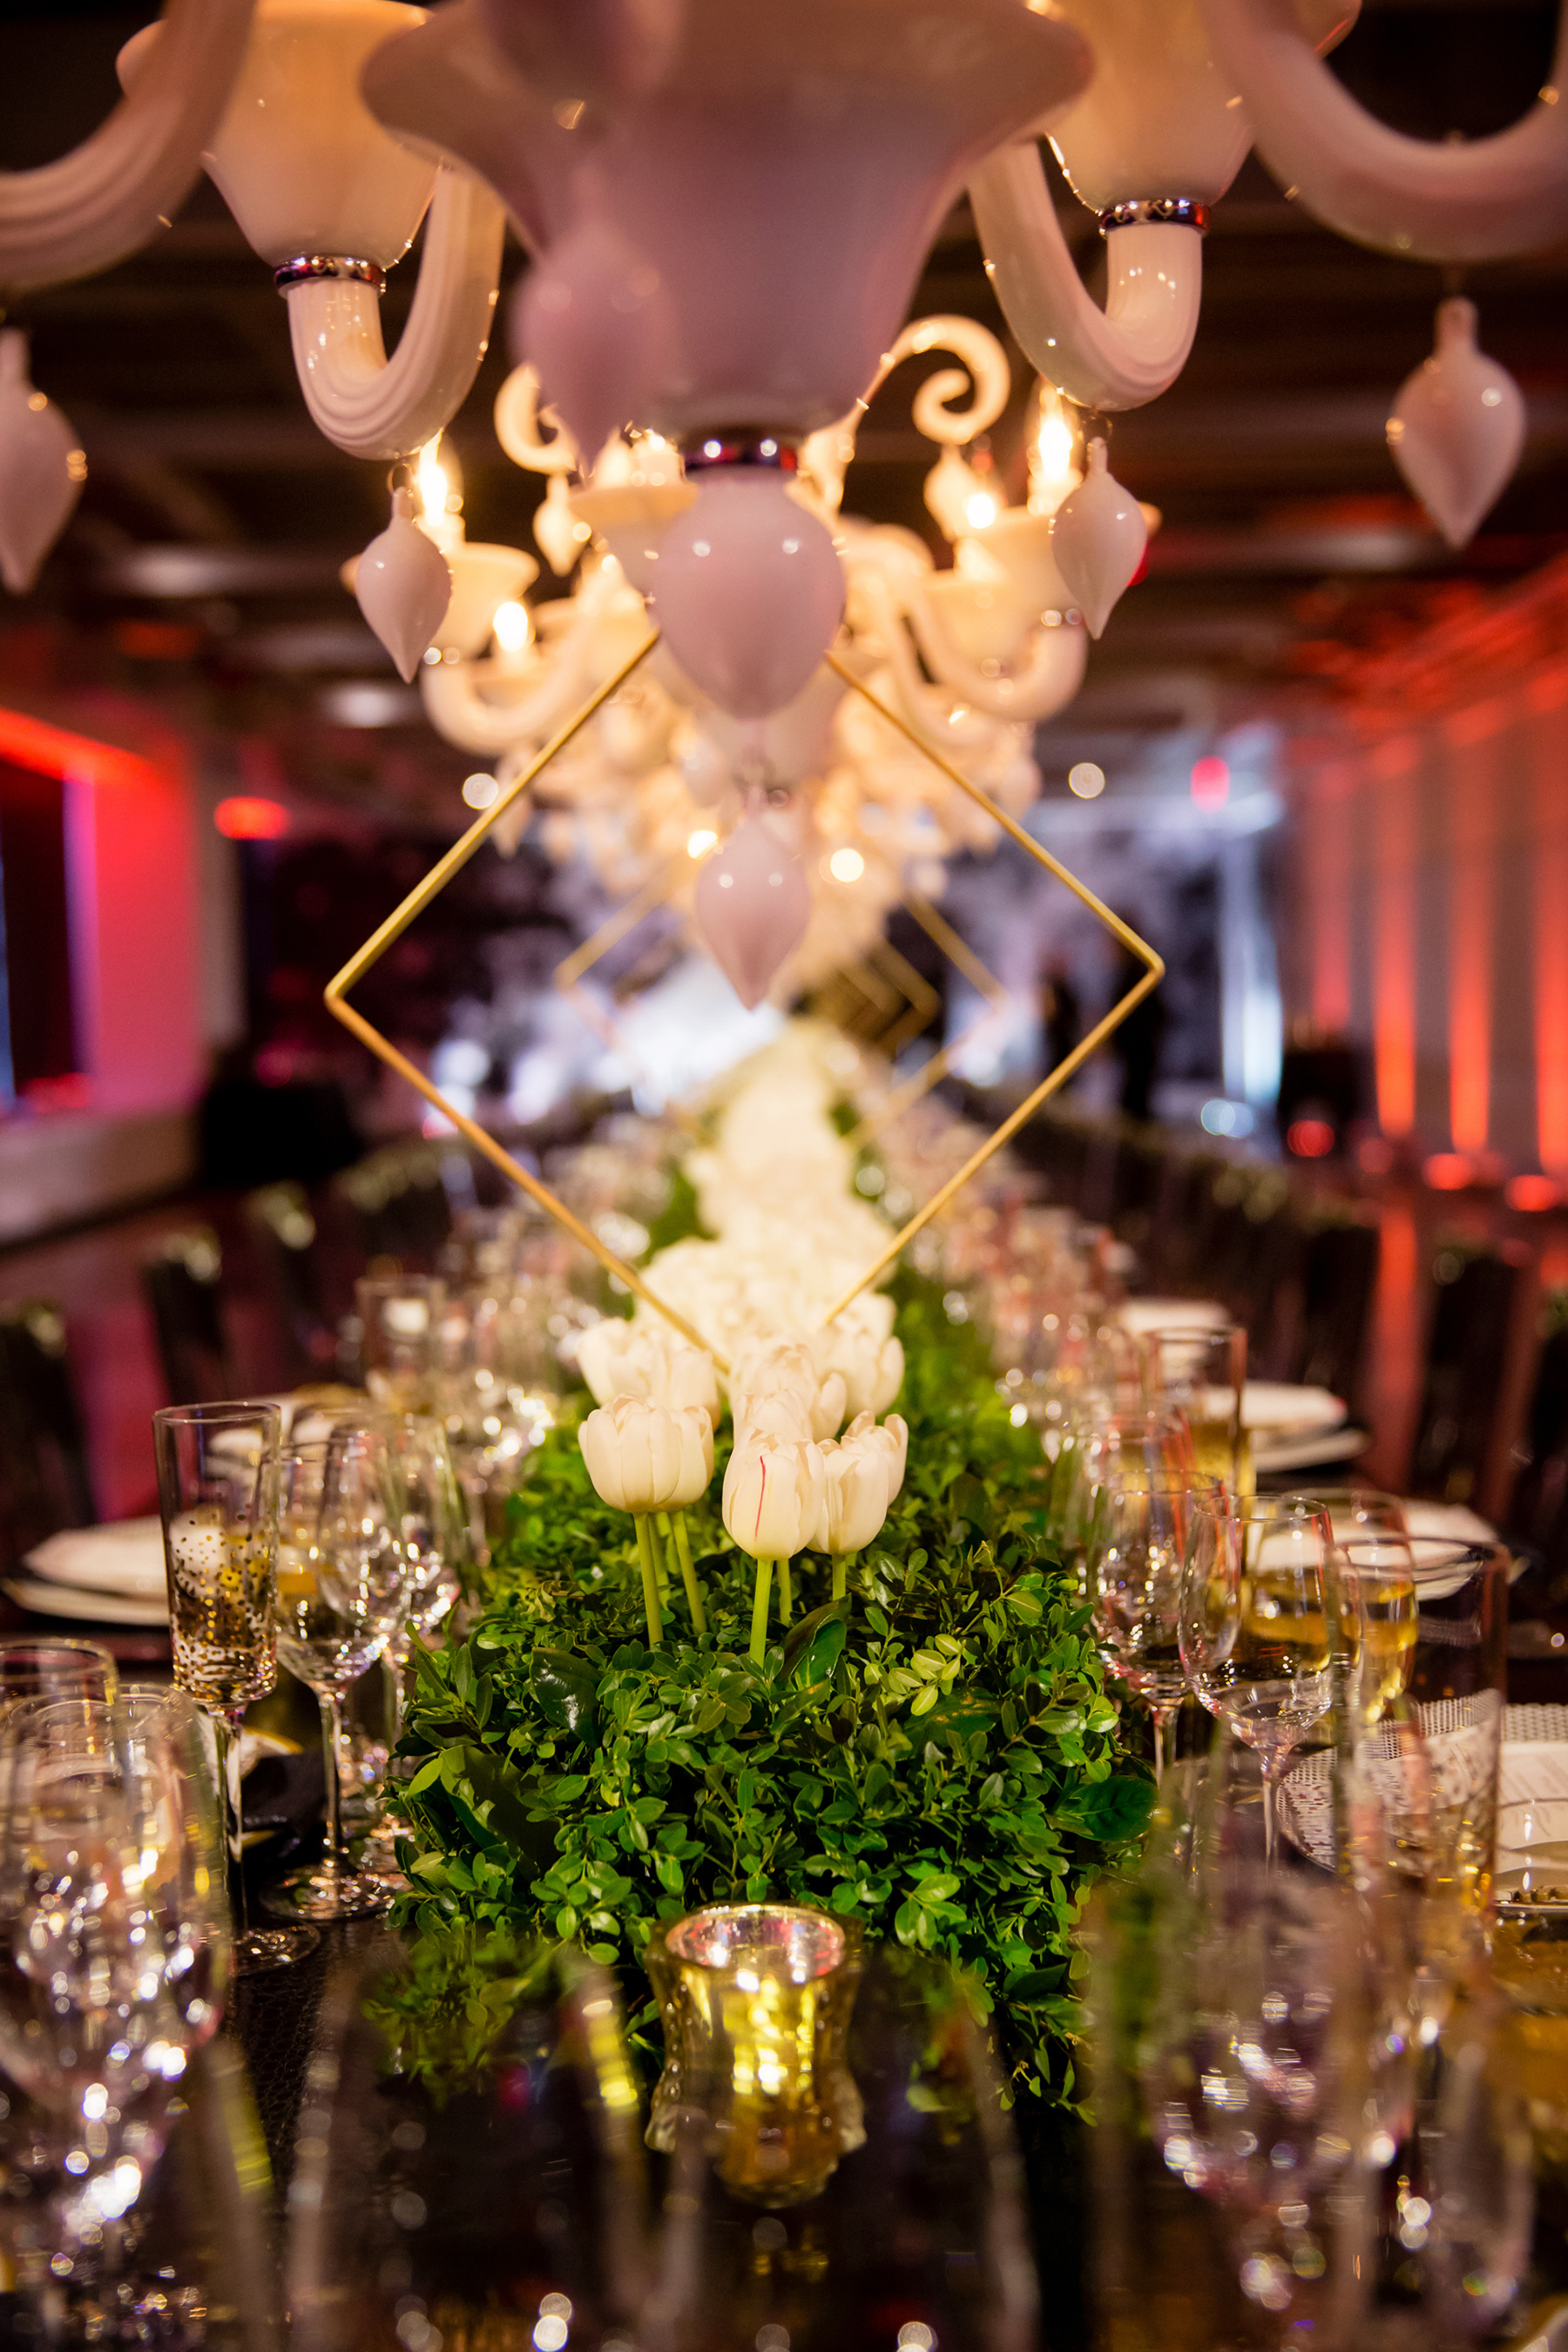 Luxe Modern Dinner - Suzanne B. Lowell Lighting Design